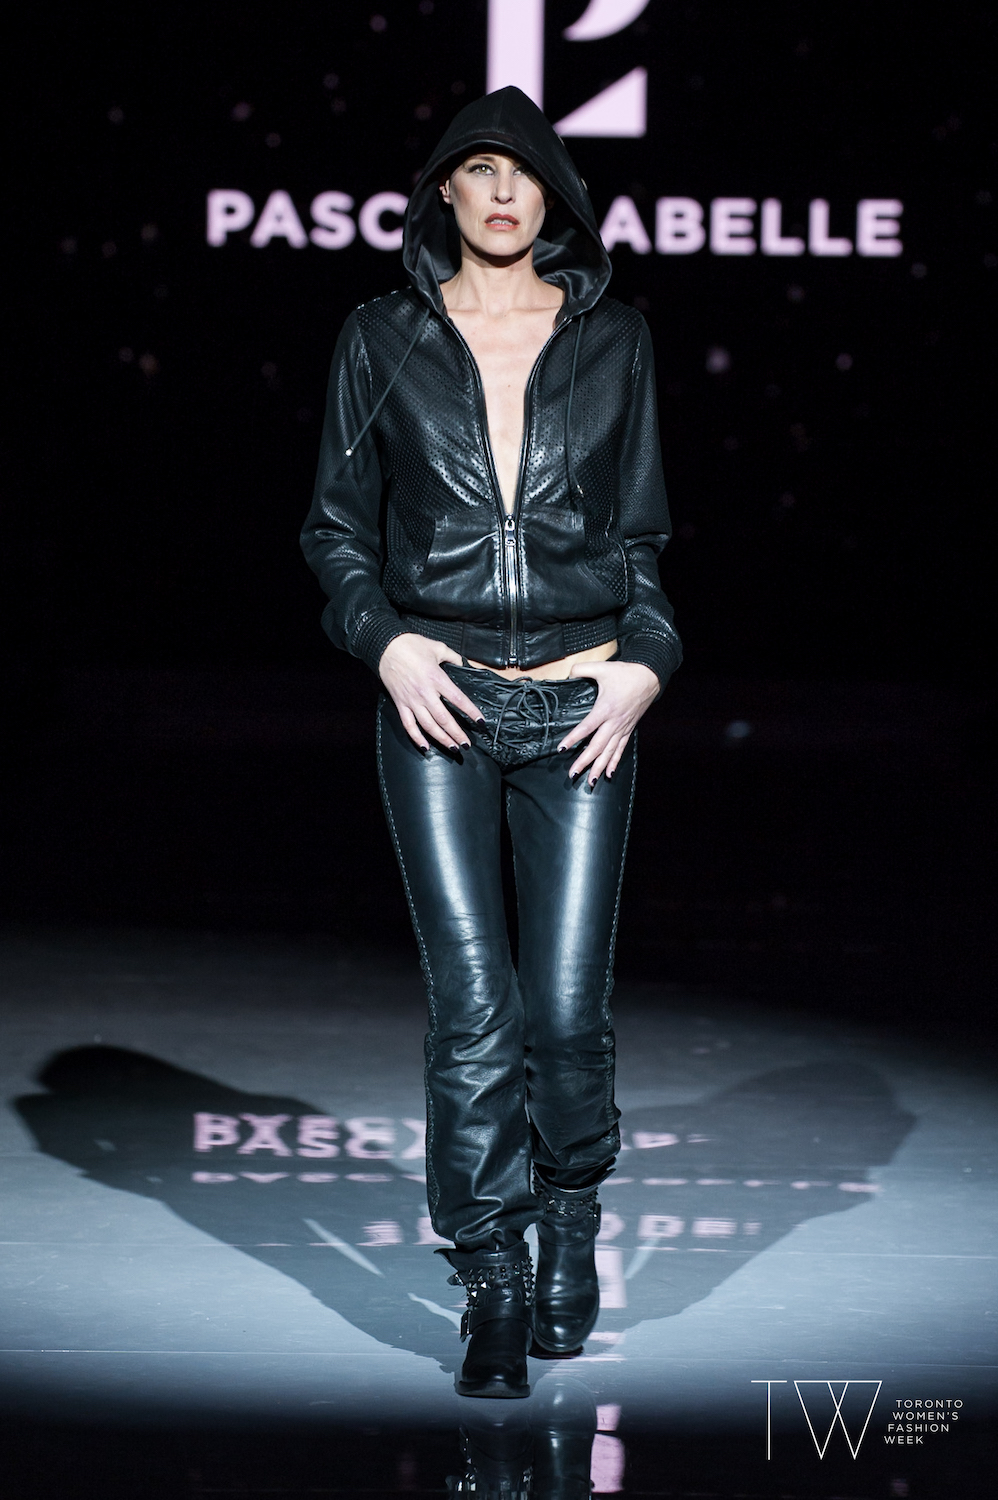 cb7ca-pascal_labelle-twfw-toronto-womens-fashion-week-photo-credit-che-rosales-womens-look-1.jpg